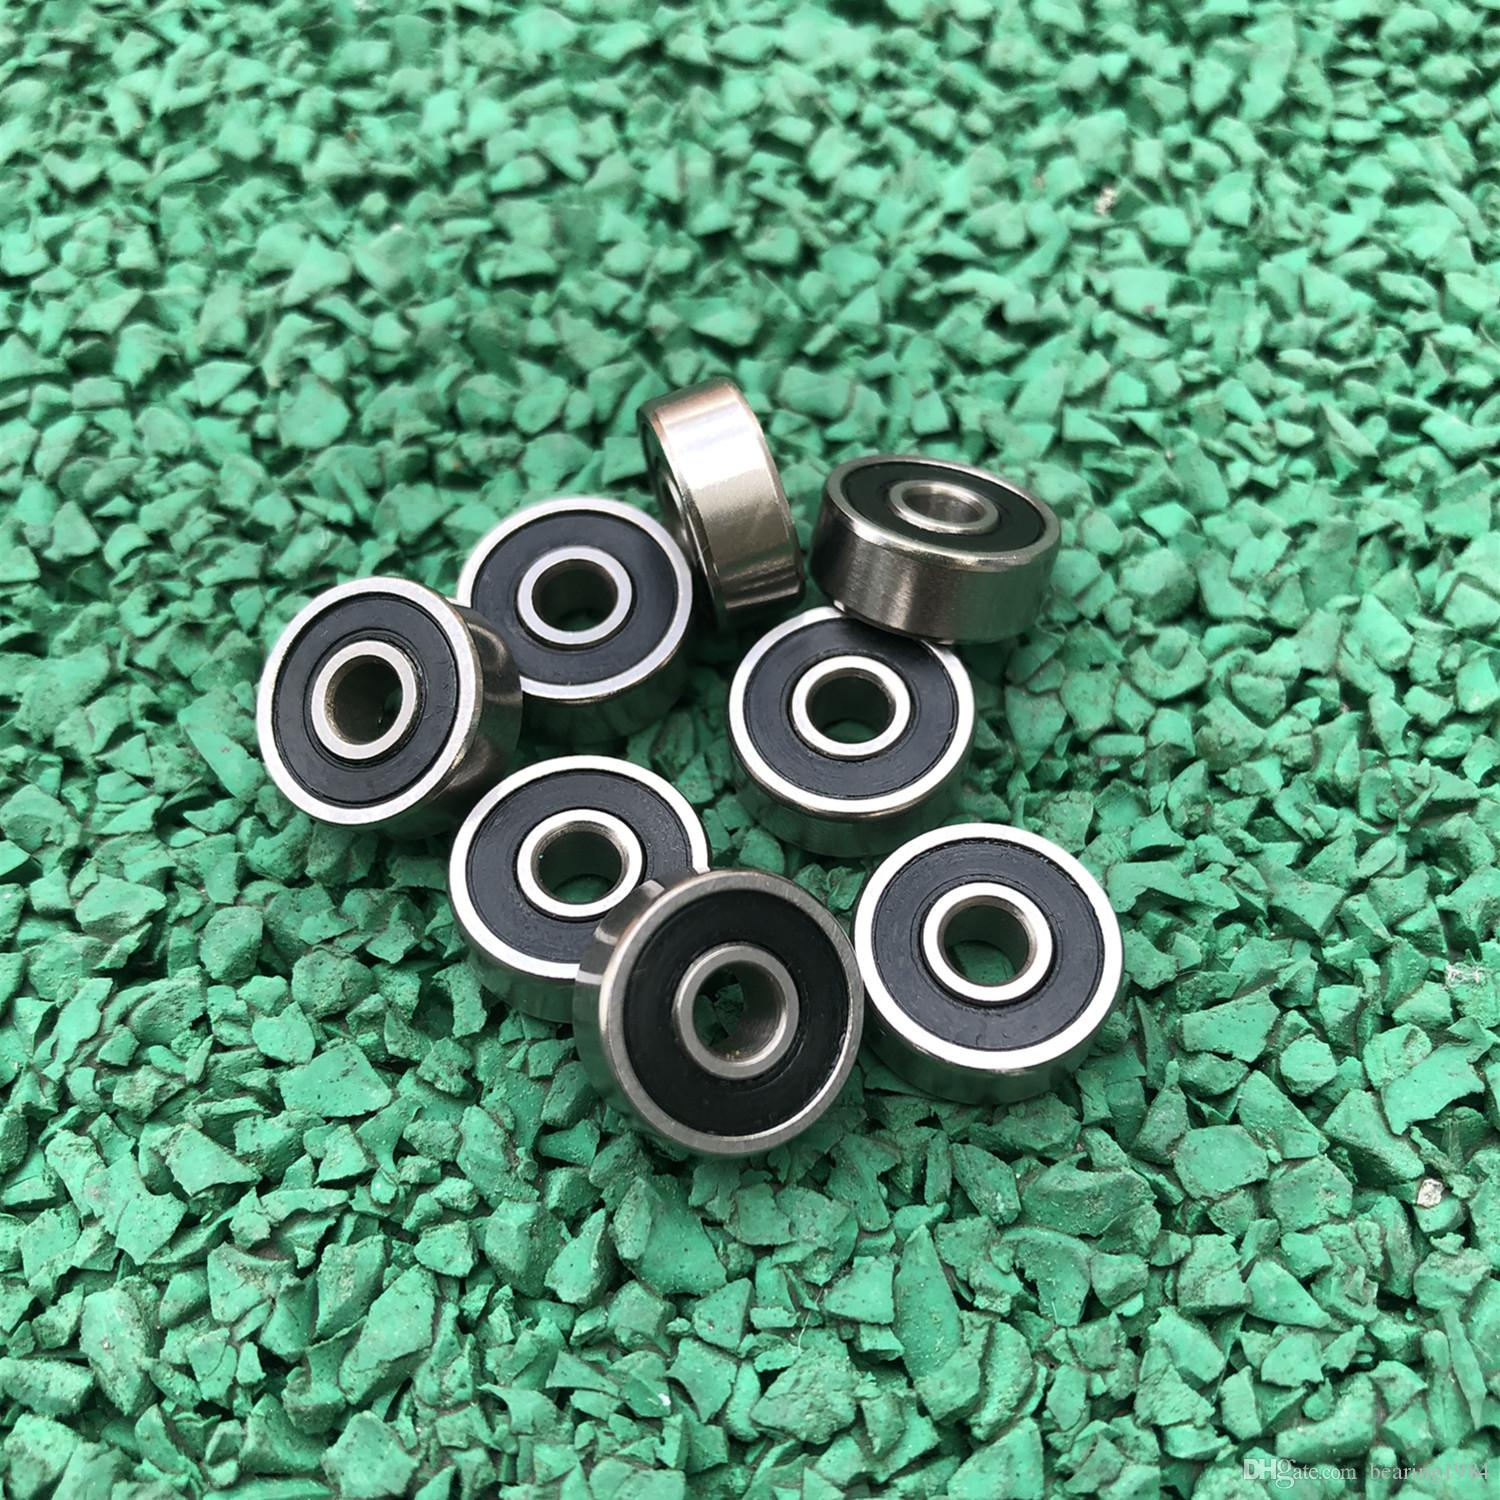 50pcs 628-2RS 8x24x8 miniature rubber sealed deep groove ball bearing 628RS 8*24*8 mm